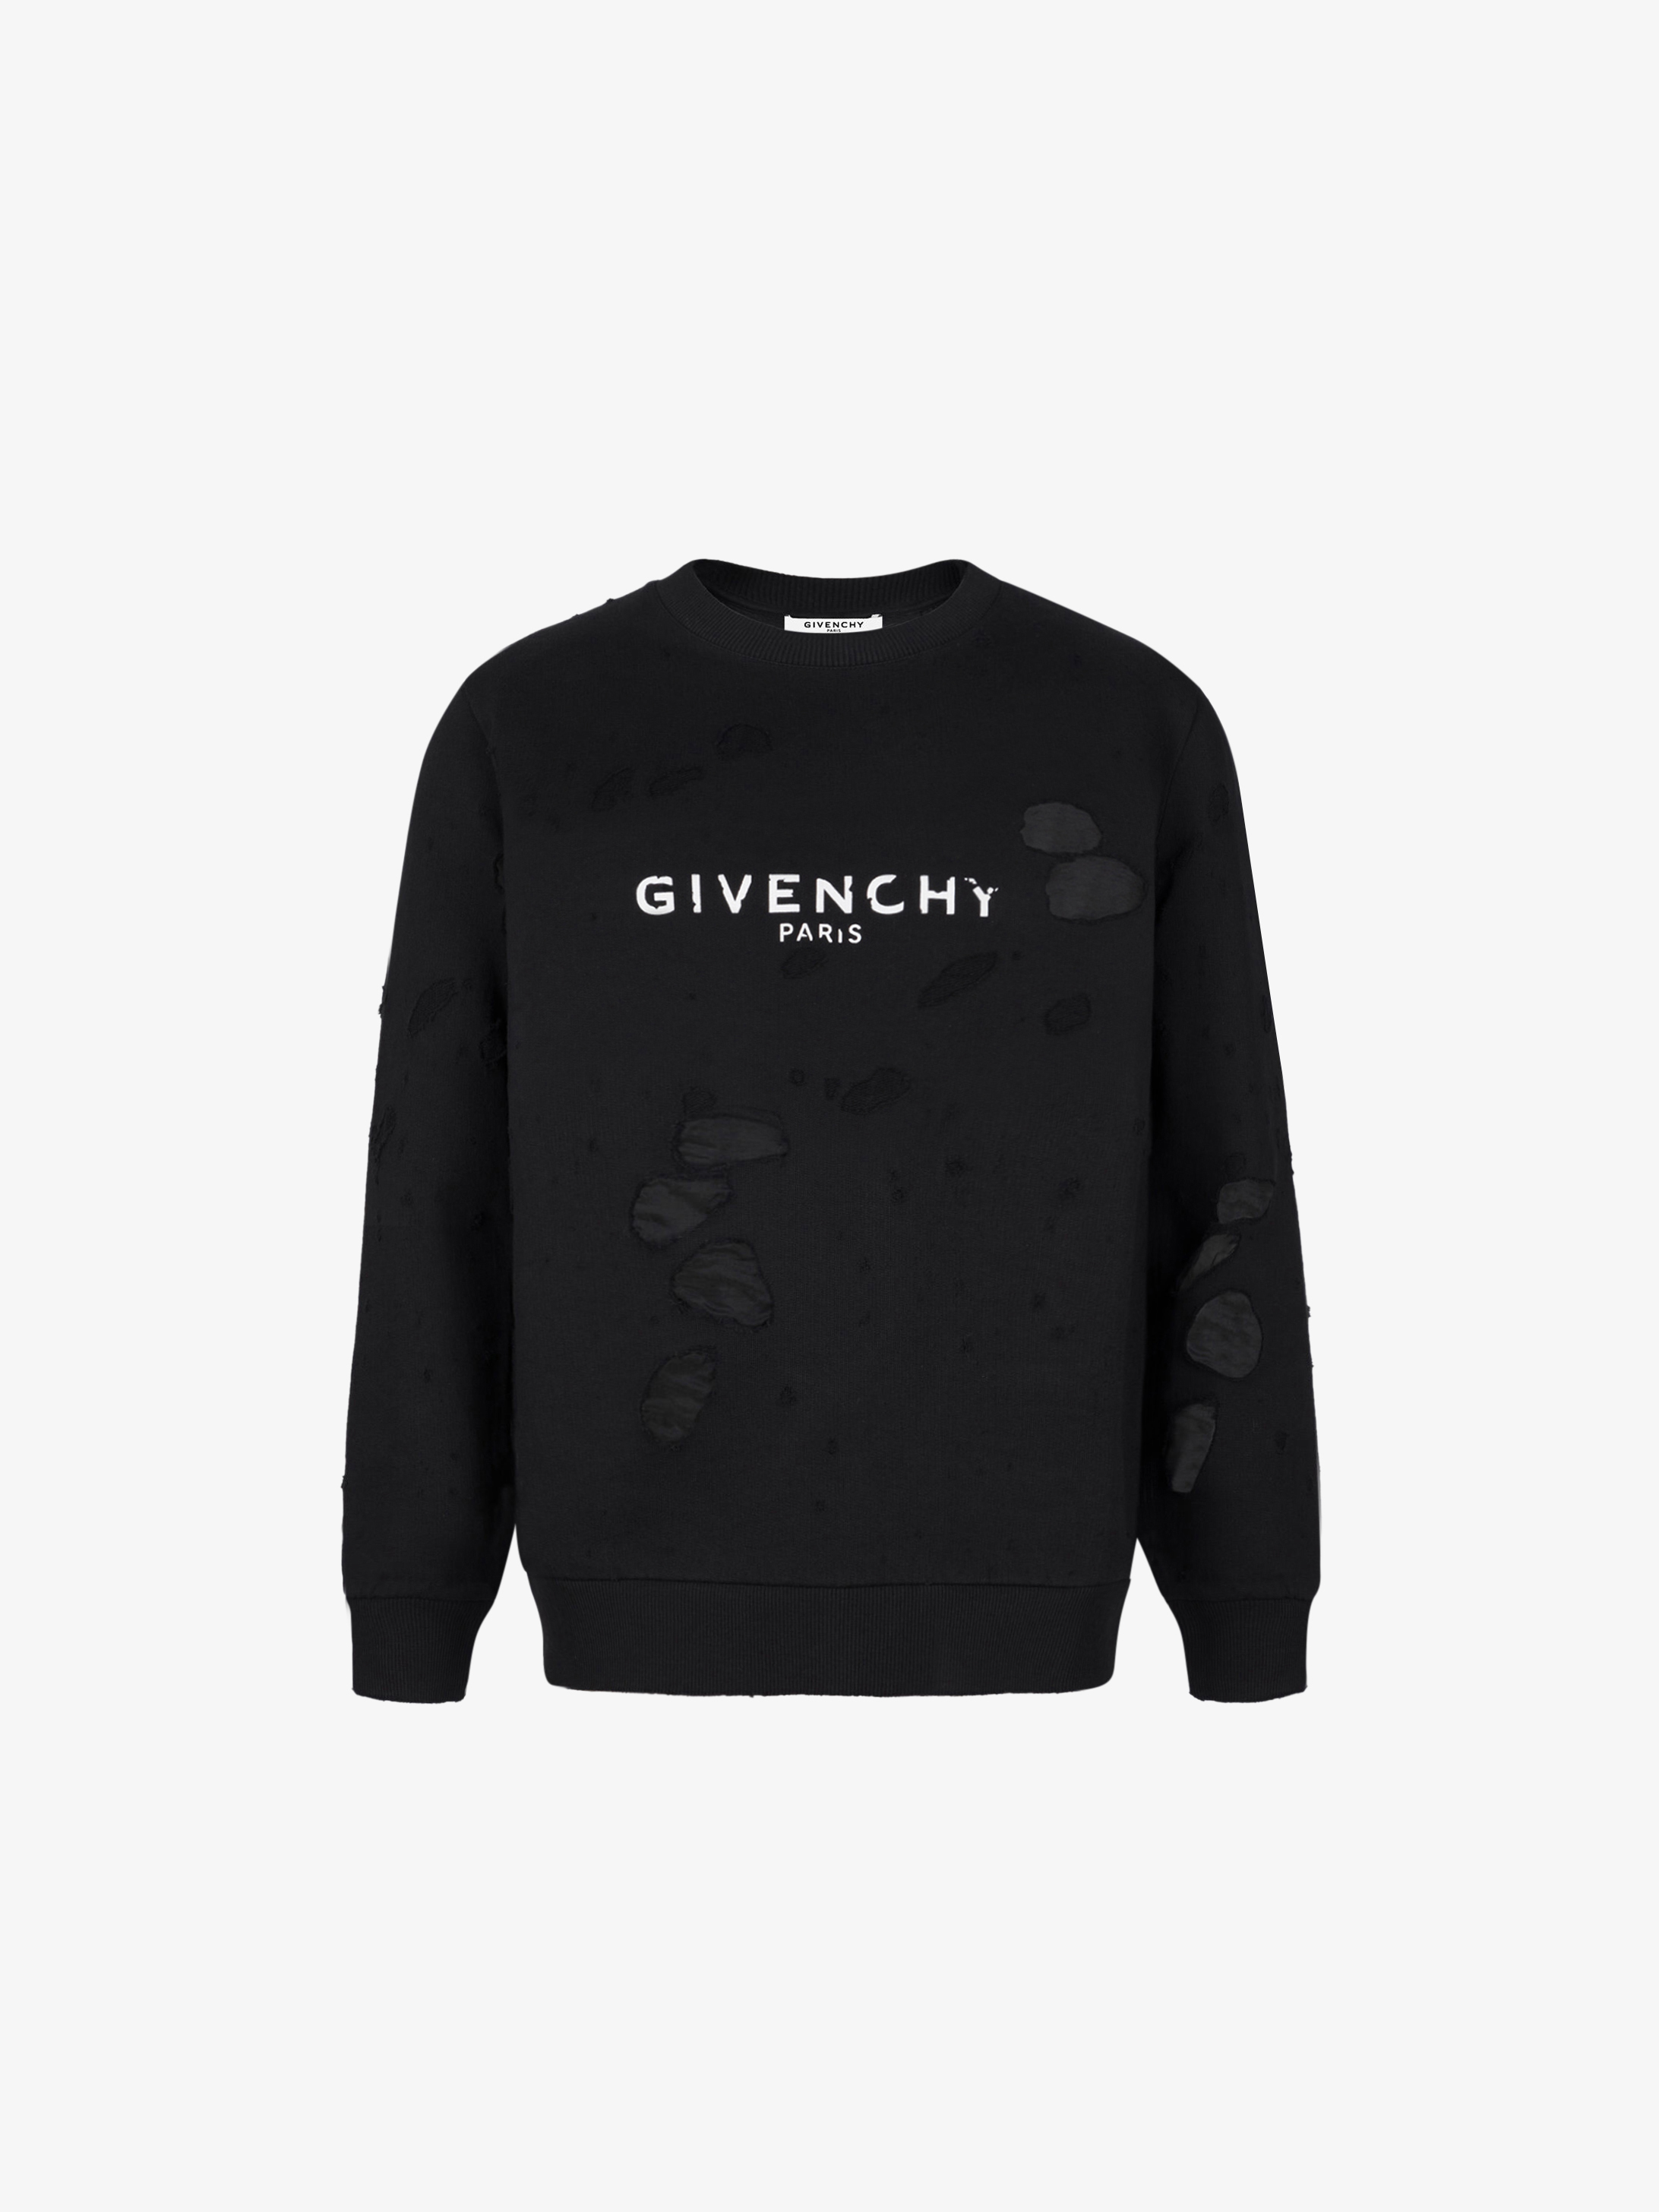 GIVENCHY PARIS破洞卫衣